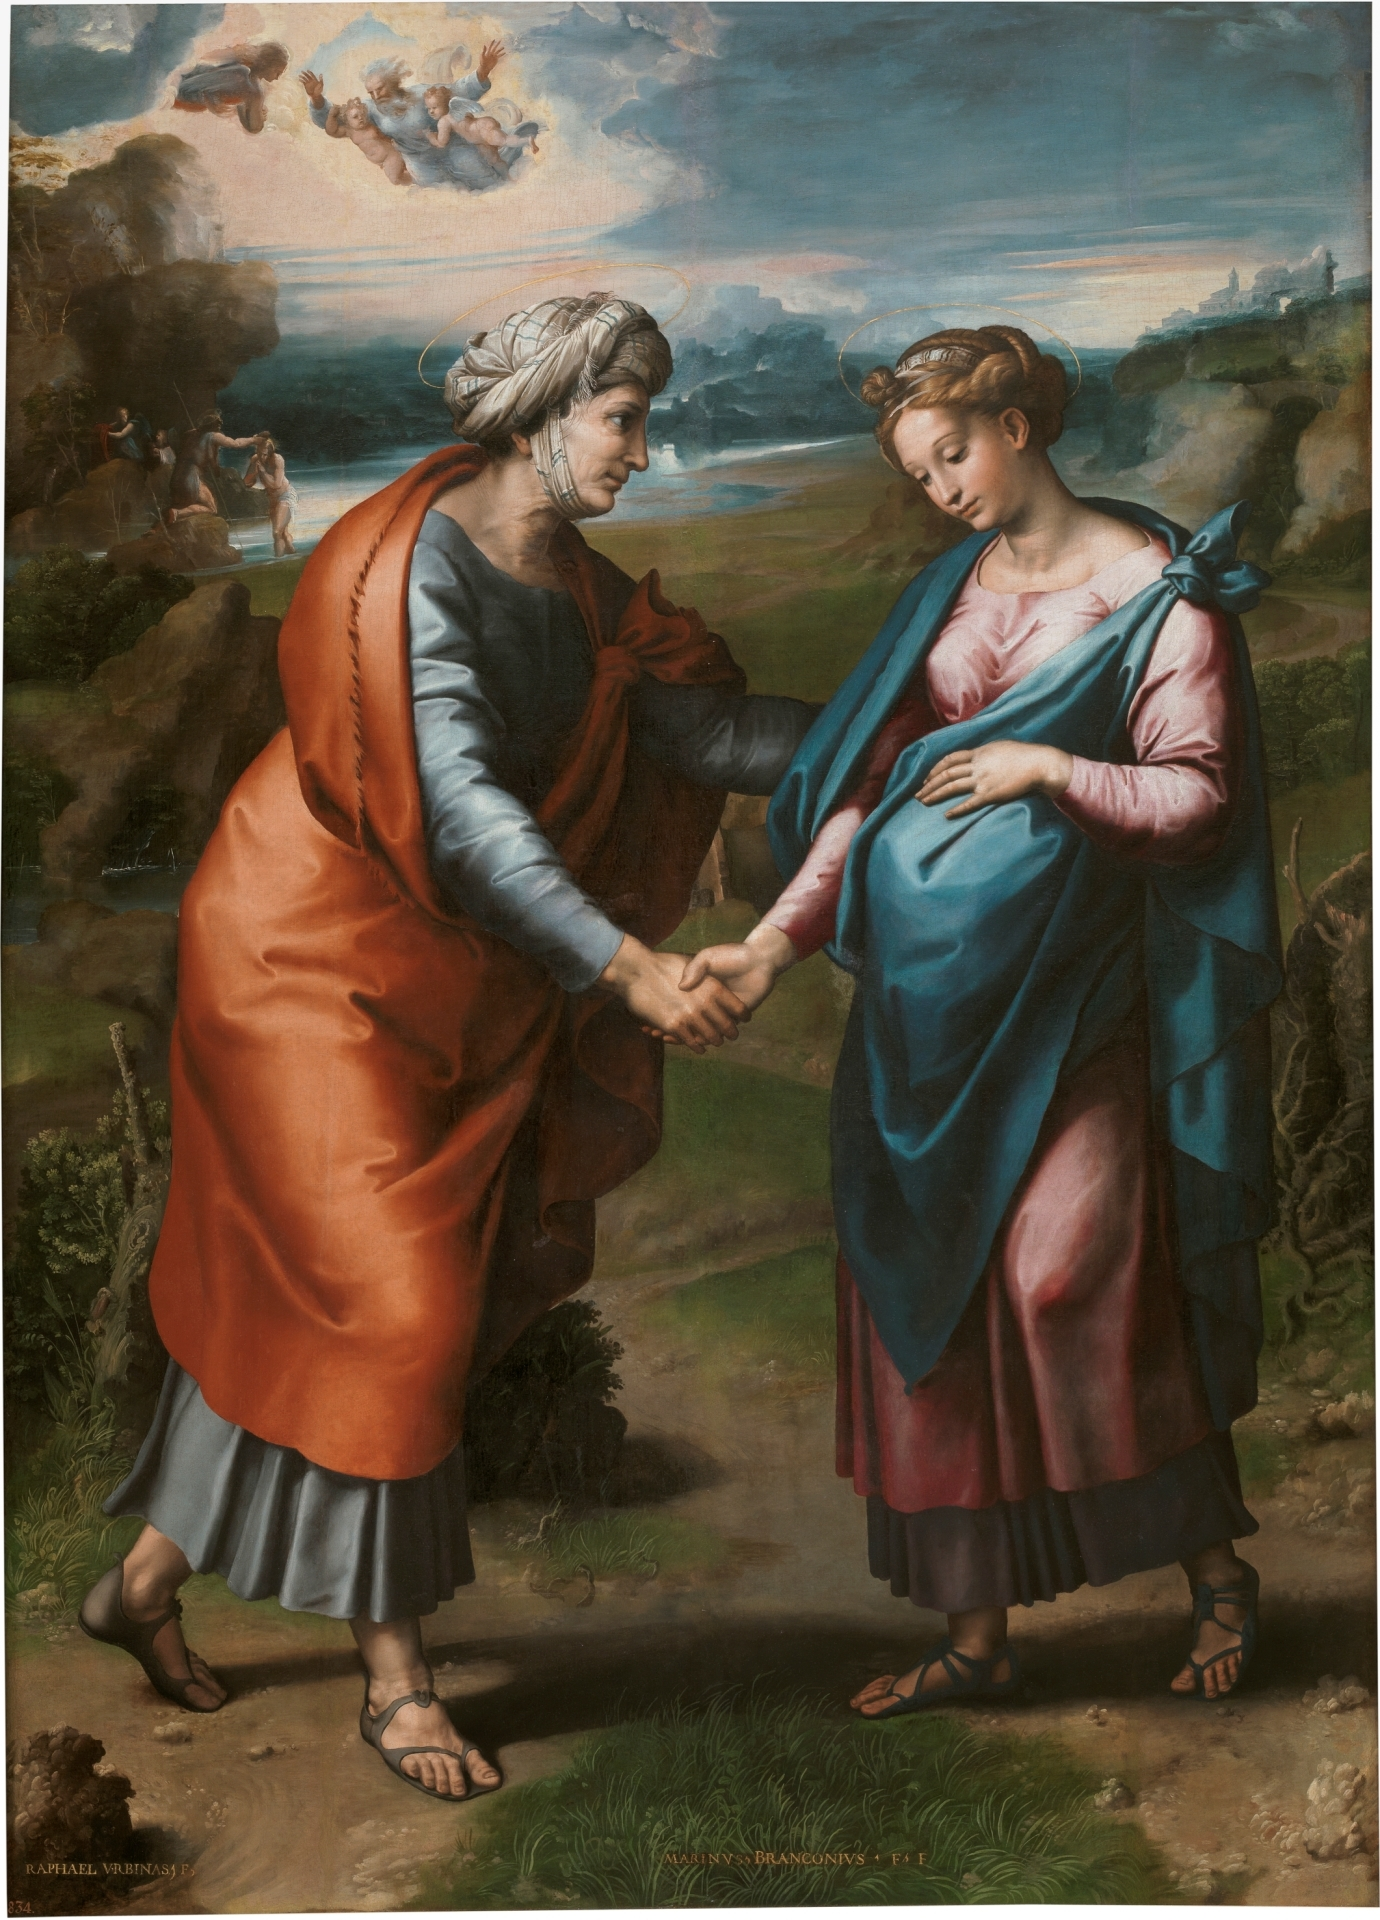 The Visitation, by Raphael and Workshop, c. 1617. Museo del Prado, Madrid, Spain. Via IllustratedPrayer.com